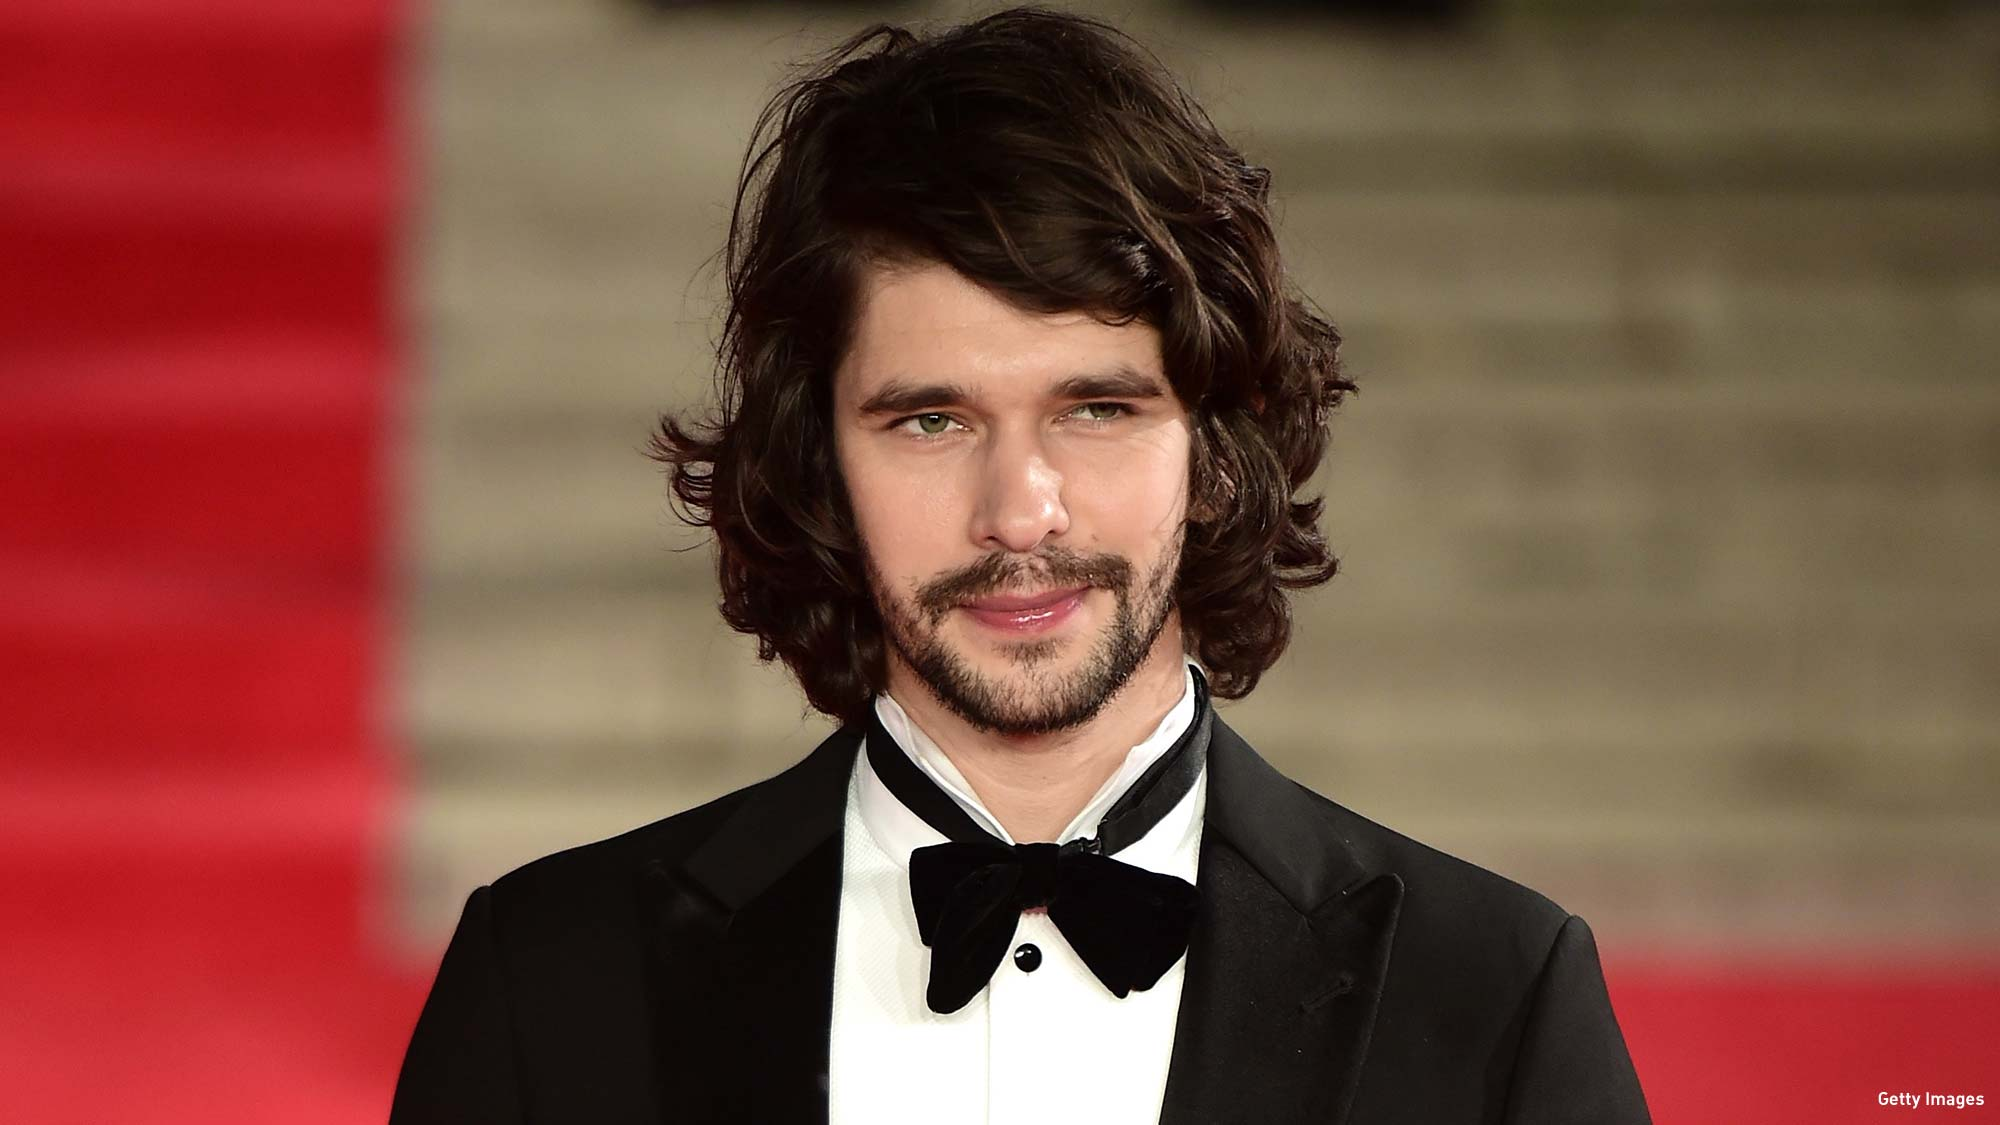 Ben Whishaw In Talks For 'Mary Poppins Returns